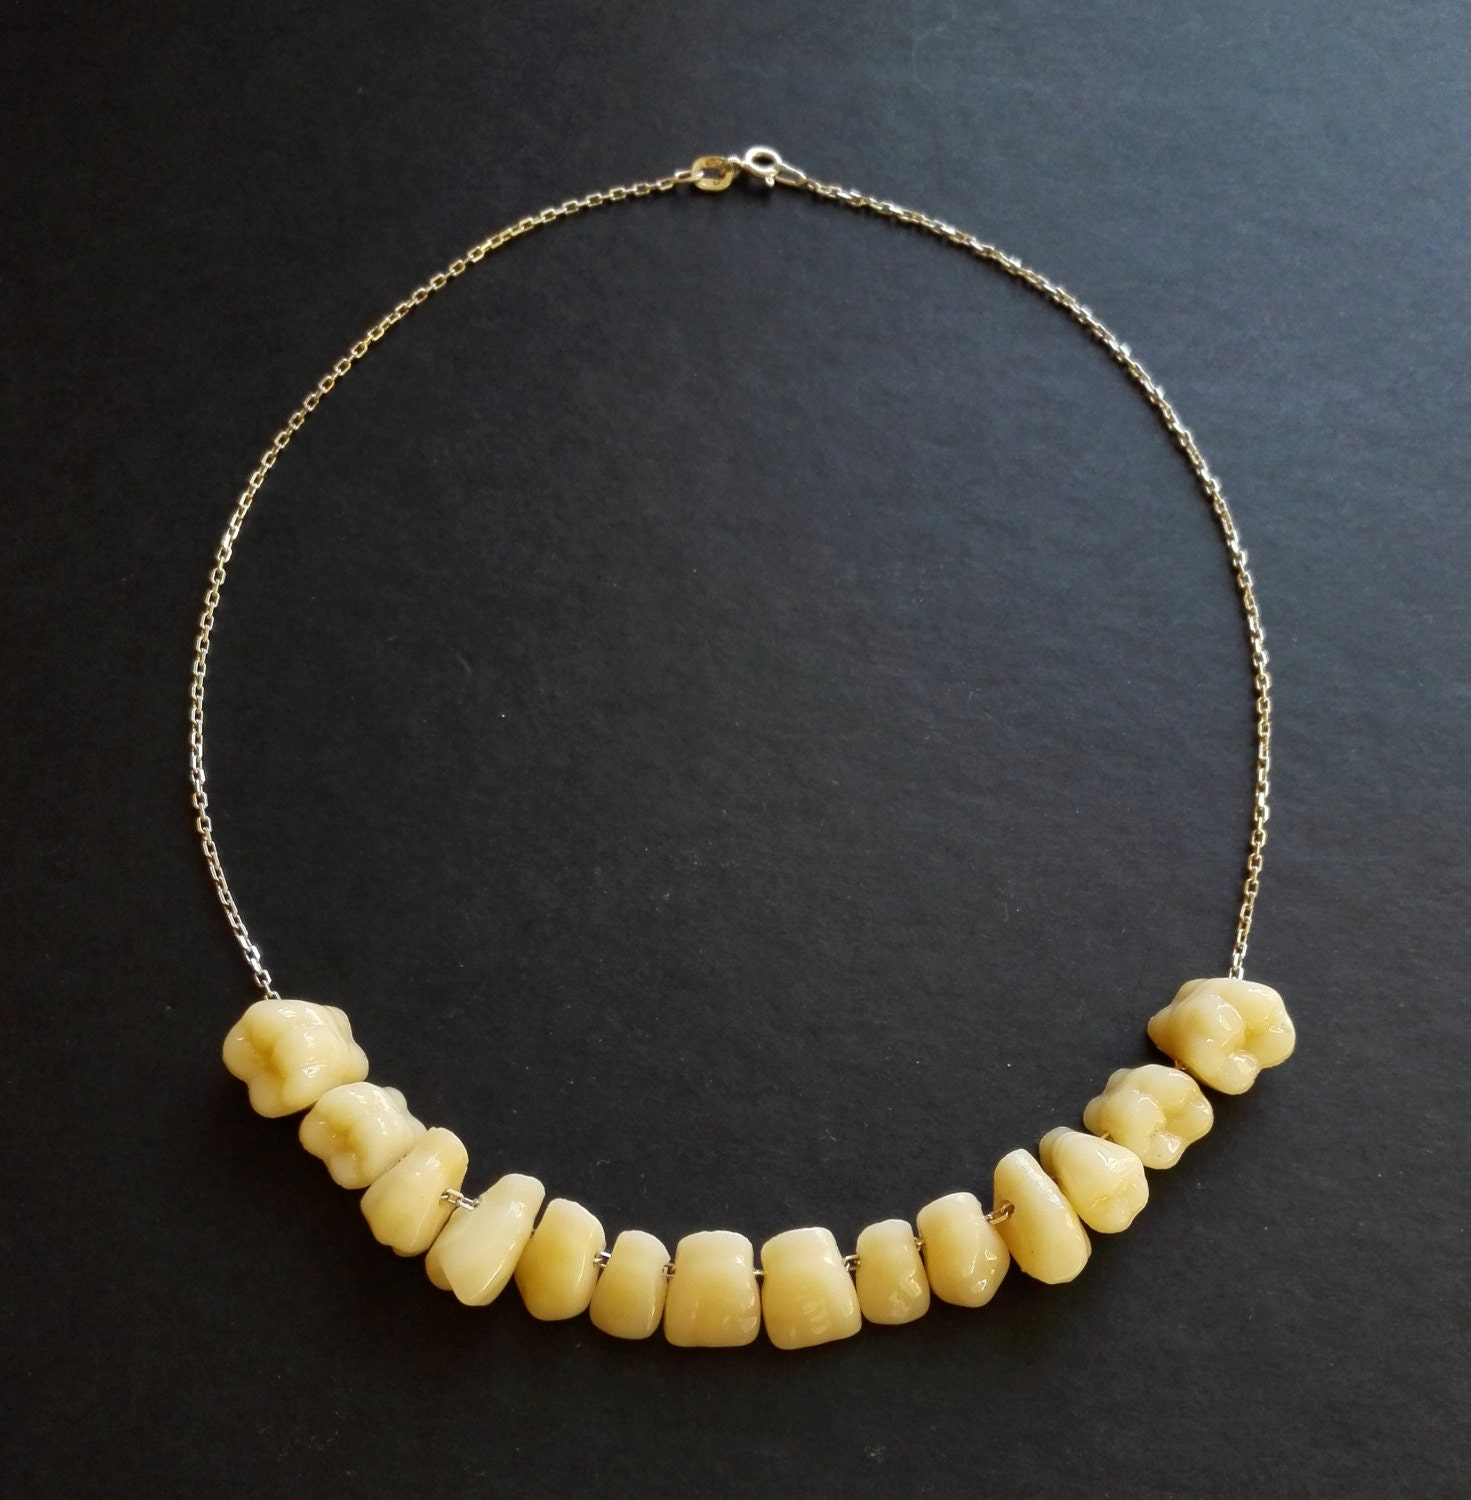 human teeth tooth necklace pendant sterling silver bone